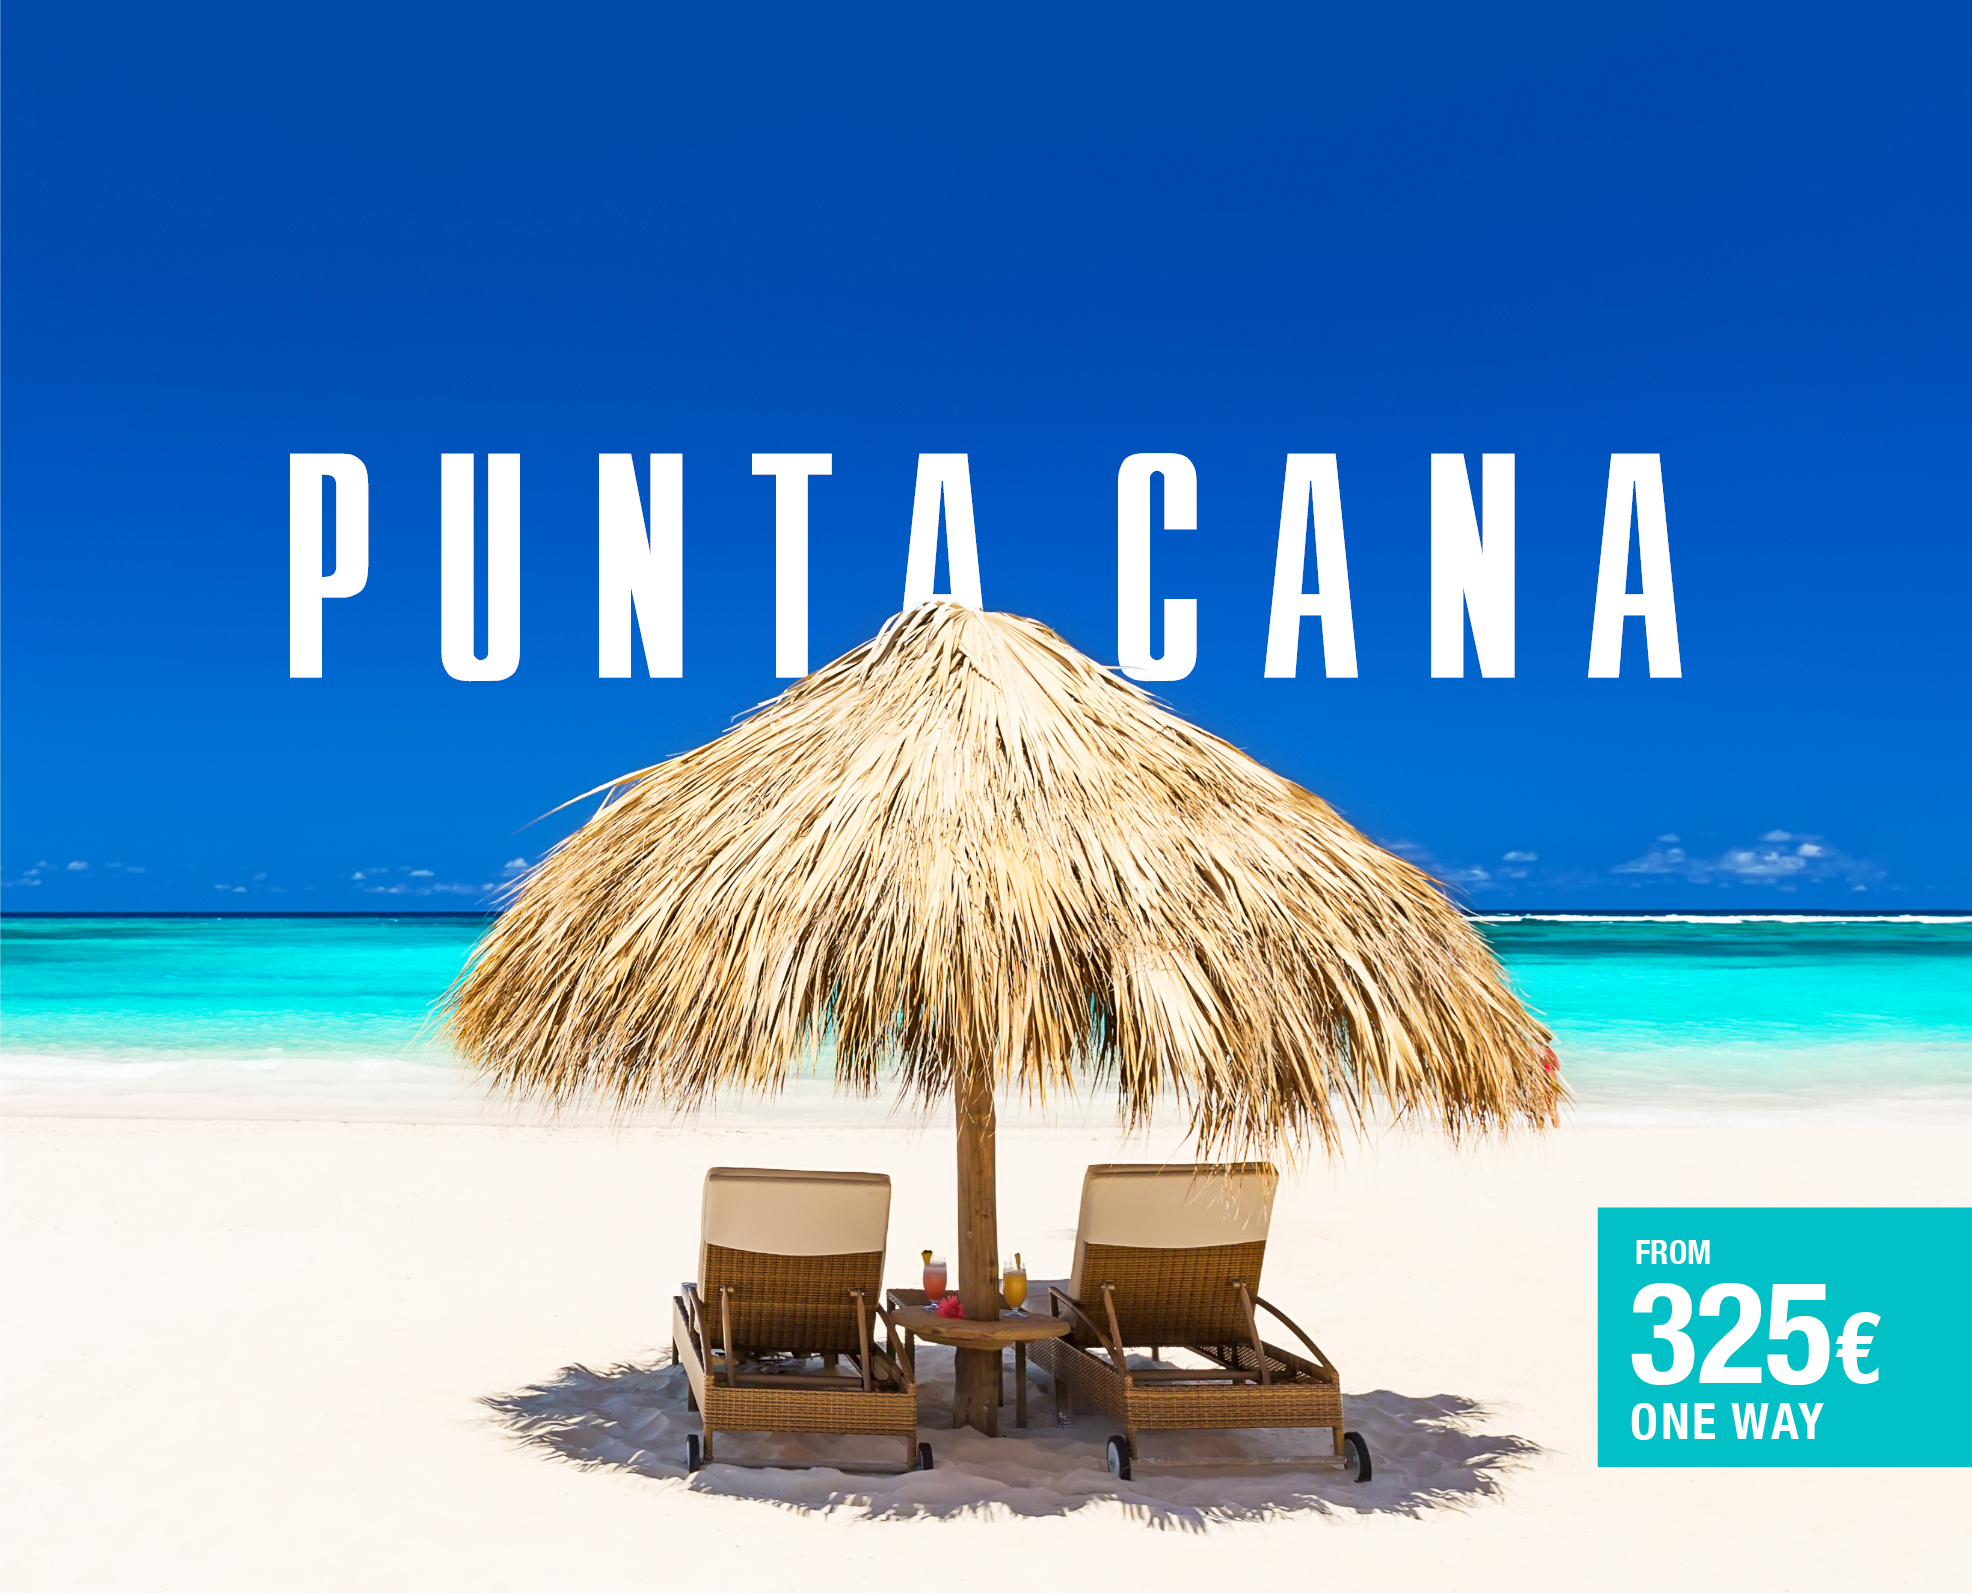 Flights to Punta Cana